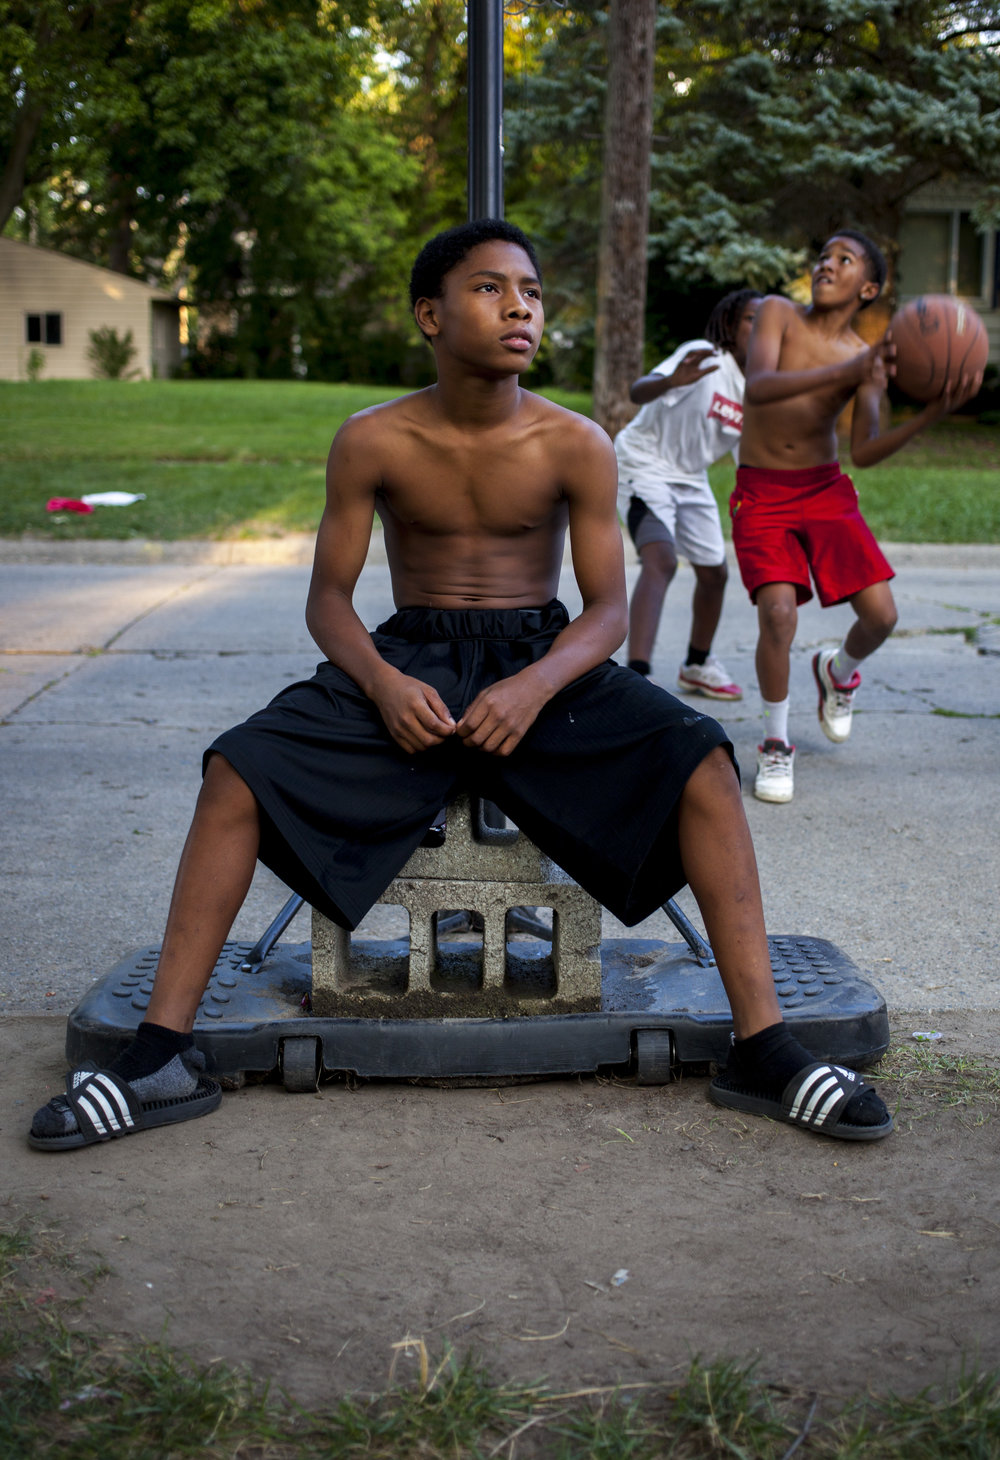 Briyan Nicholson, 11, of Saginaw takes a break from playing while the game continues behind him on Saginaw's Westside.